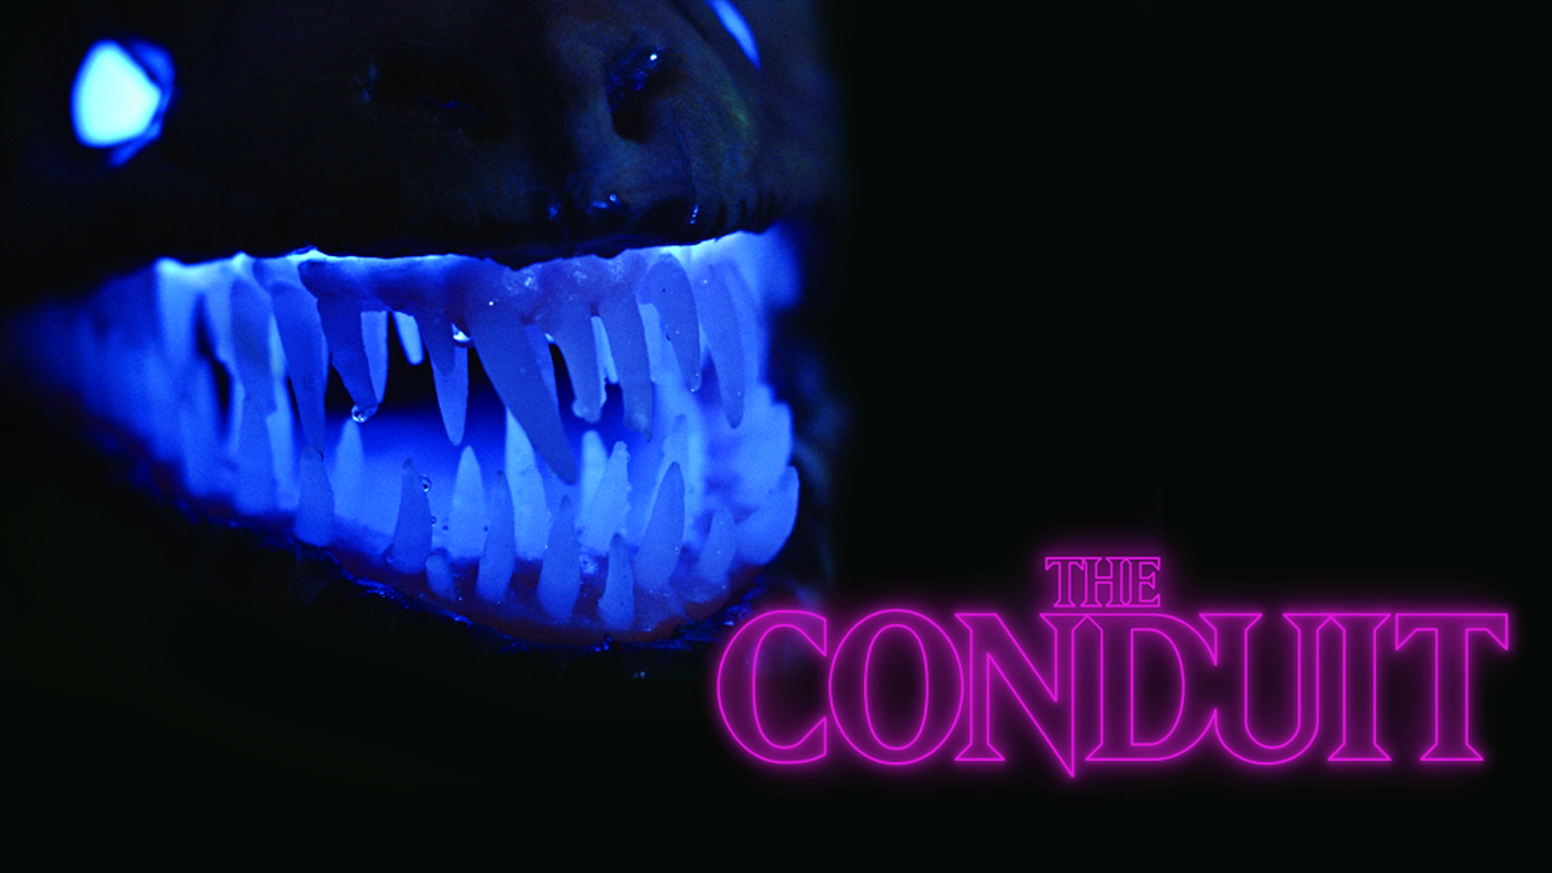 The Conduit Short Film 2.0 - Practical Special Effects Movie by John on special signs, special fx teeth, special fx prosthetics, special backgrounds, special fx fangs, computer animation, sound effect, special fonts, optical printer, theatrical property, special treatment, special needs harness, special fx hair dye, special part, motion control photography, computer-generated imagery, bullet time, digital compositing, go motion, special tools, special patterns, practical effect, traditional animation, special power, special contacts, miniature effect, special objects, chroma key, 12 basic principles of animation, special equipment, the impossible voyage, prosthetic makeup, special characters, dolly zoom, special face, special props, special lights,